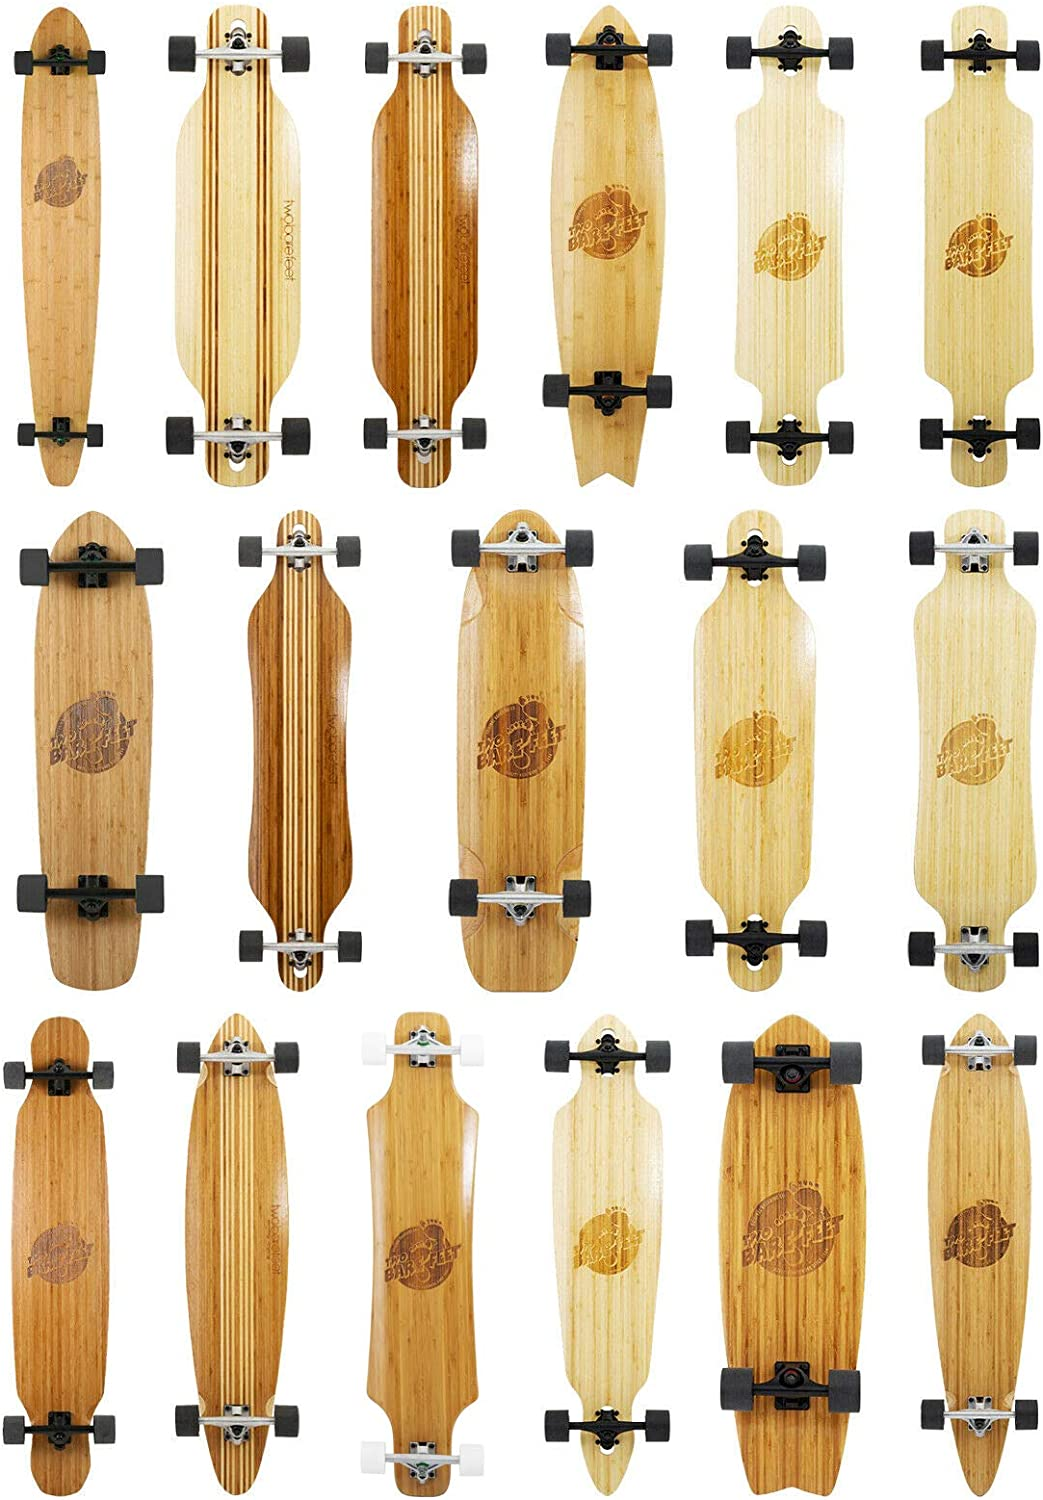 Two Bare Feet Bamboo Series Longboard Skateboard Complete Premium Pro Model / UK